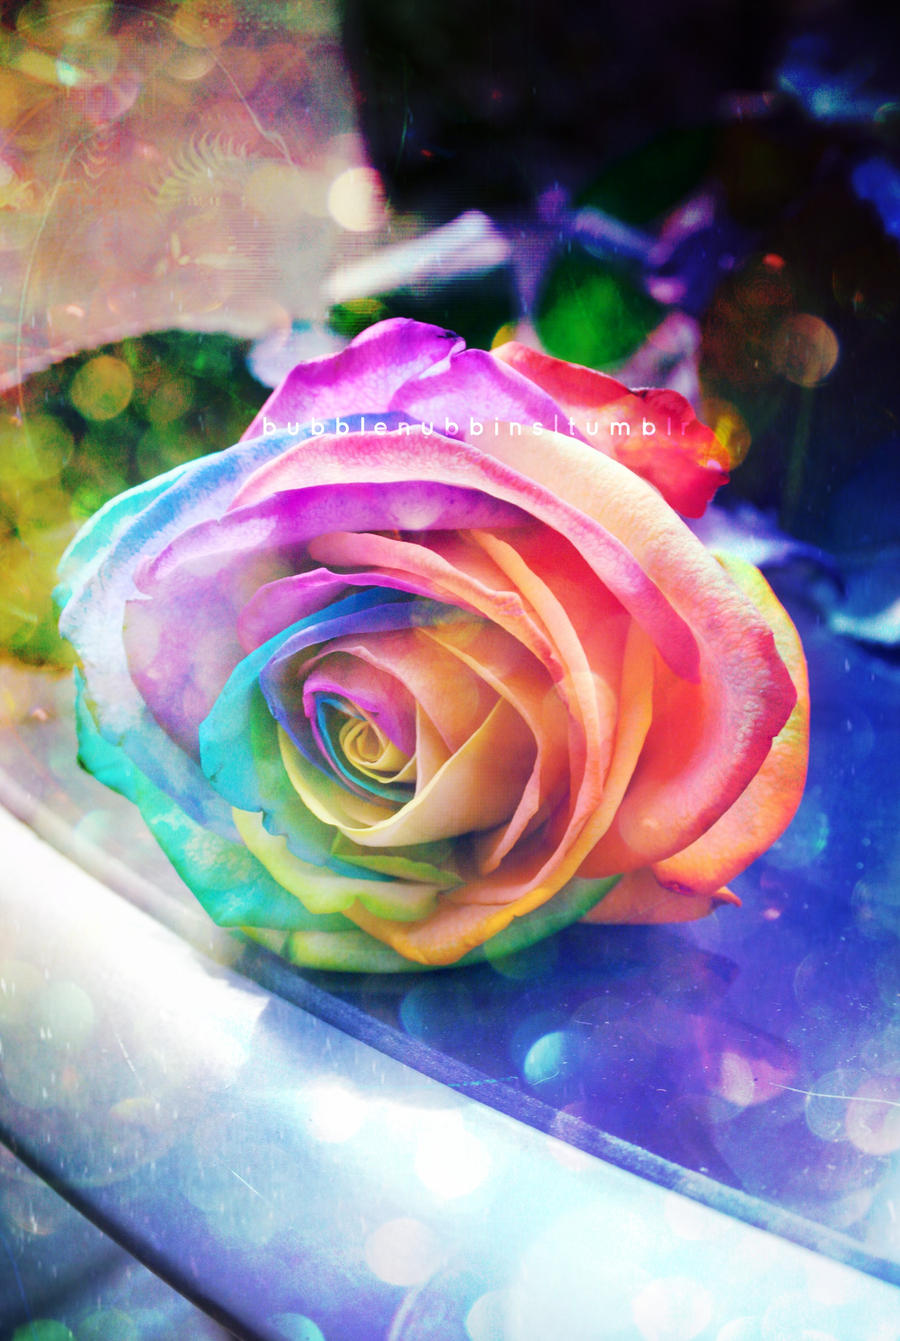 Rainbow rose by bubblenubbins on deviantart for Where to buy rainbow roses